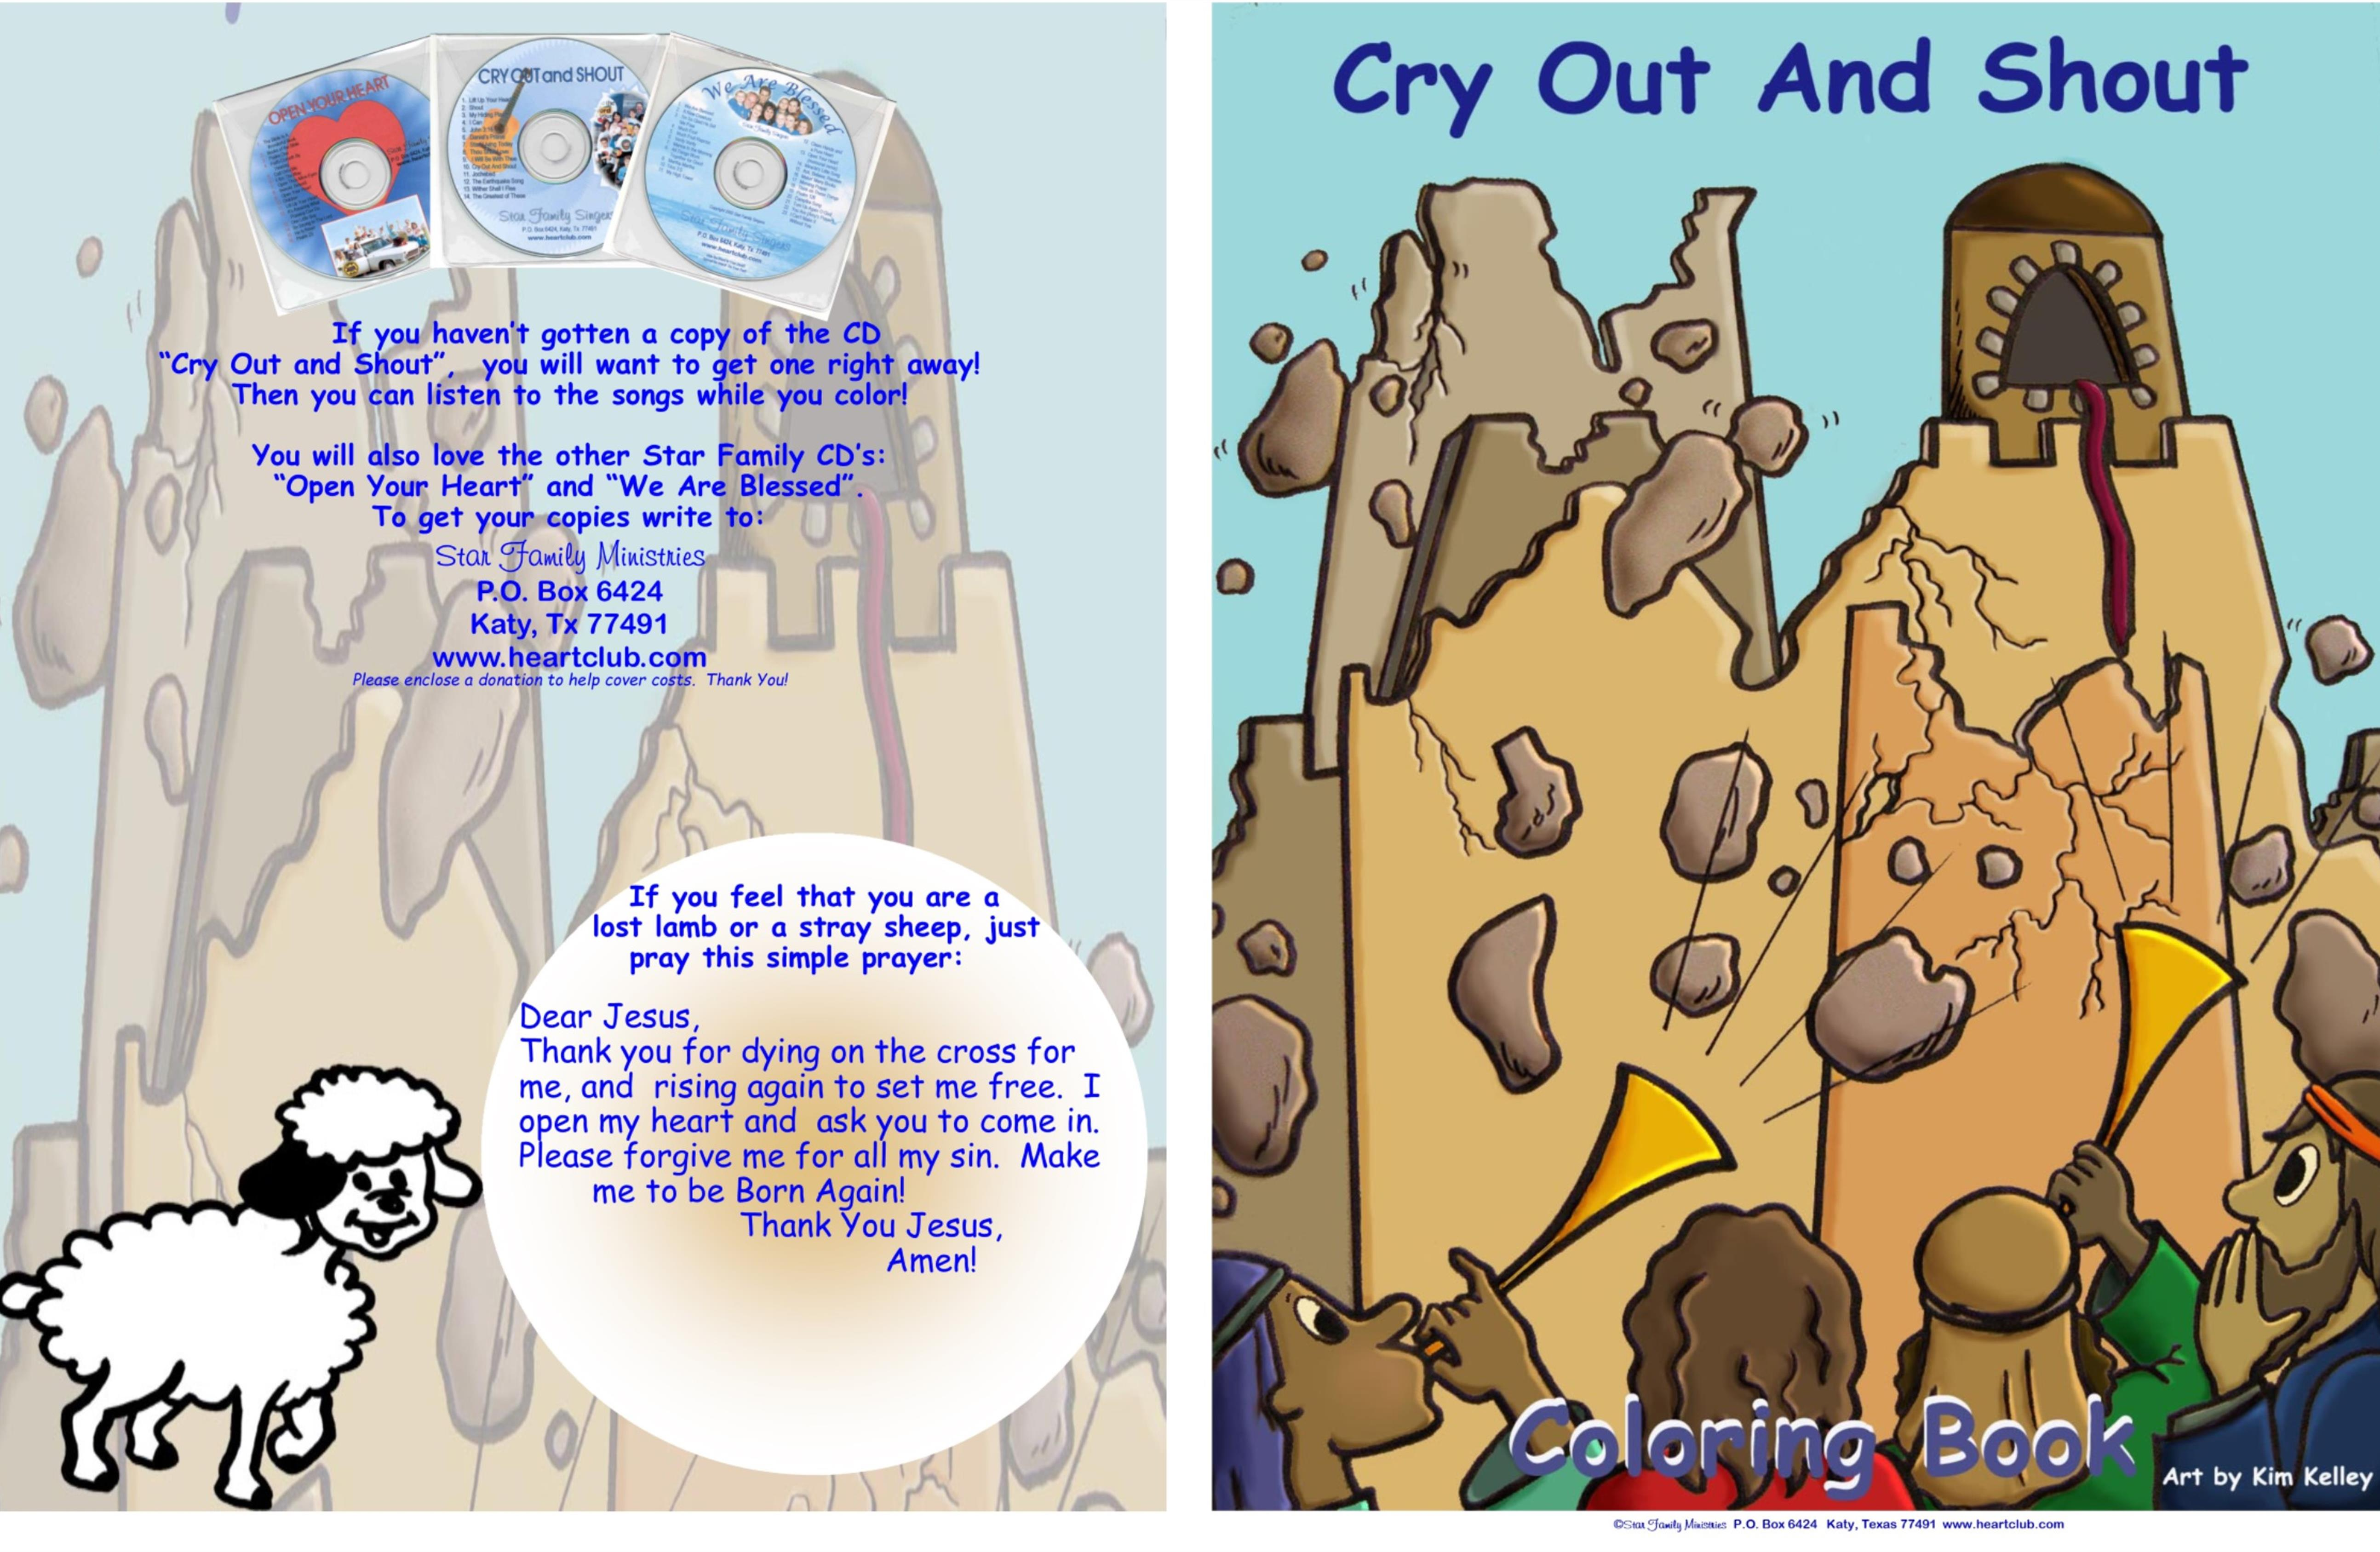 Cry Out and Shout Coloring Book cover image